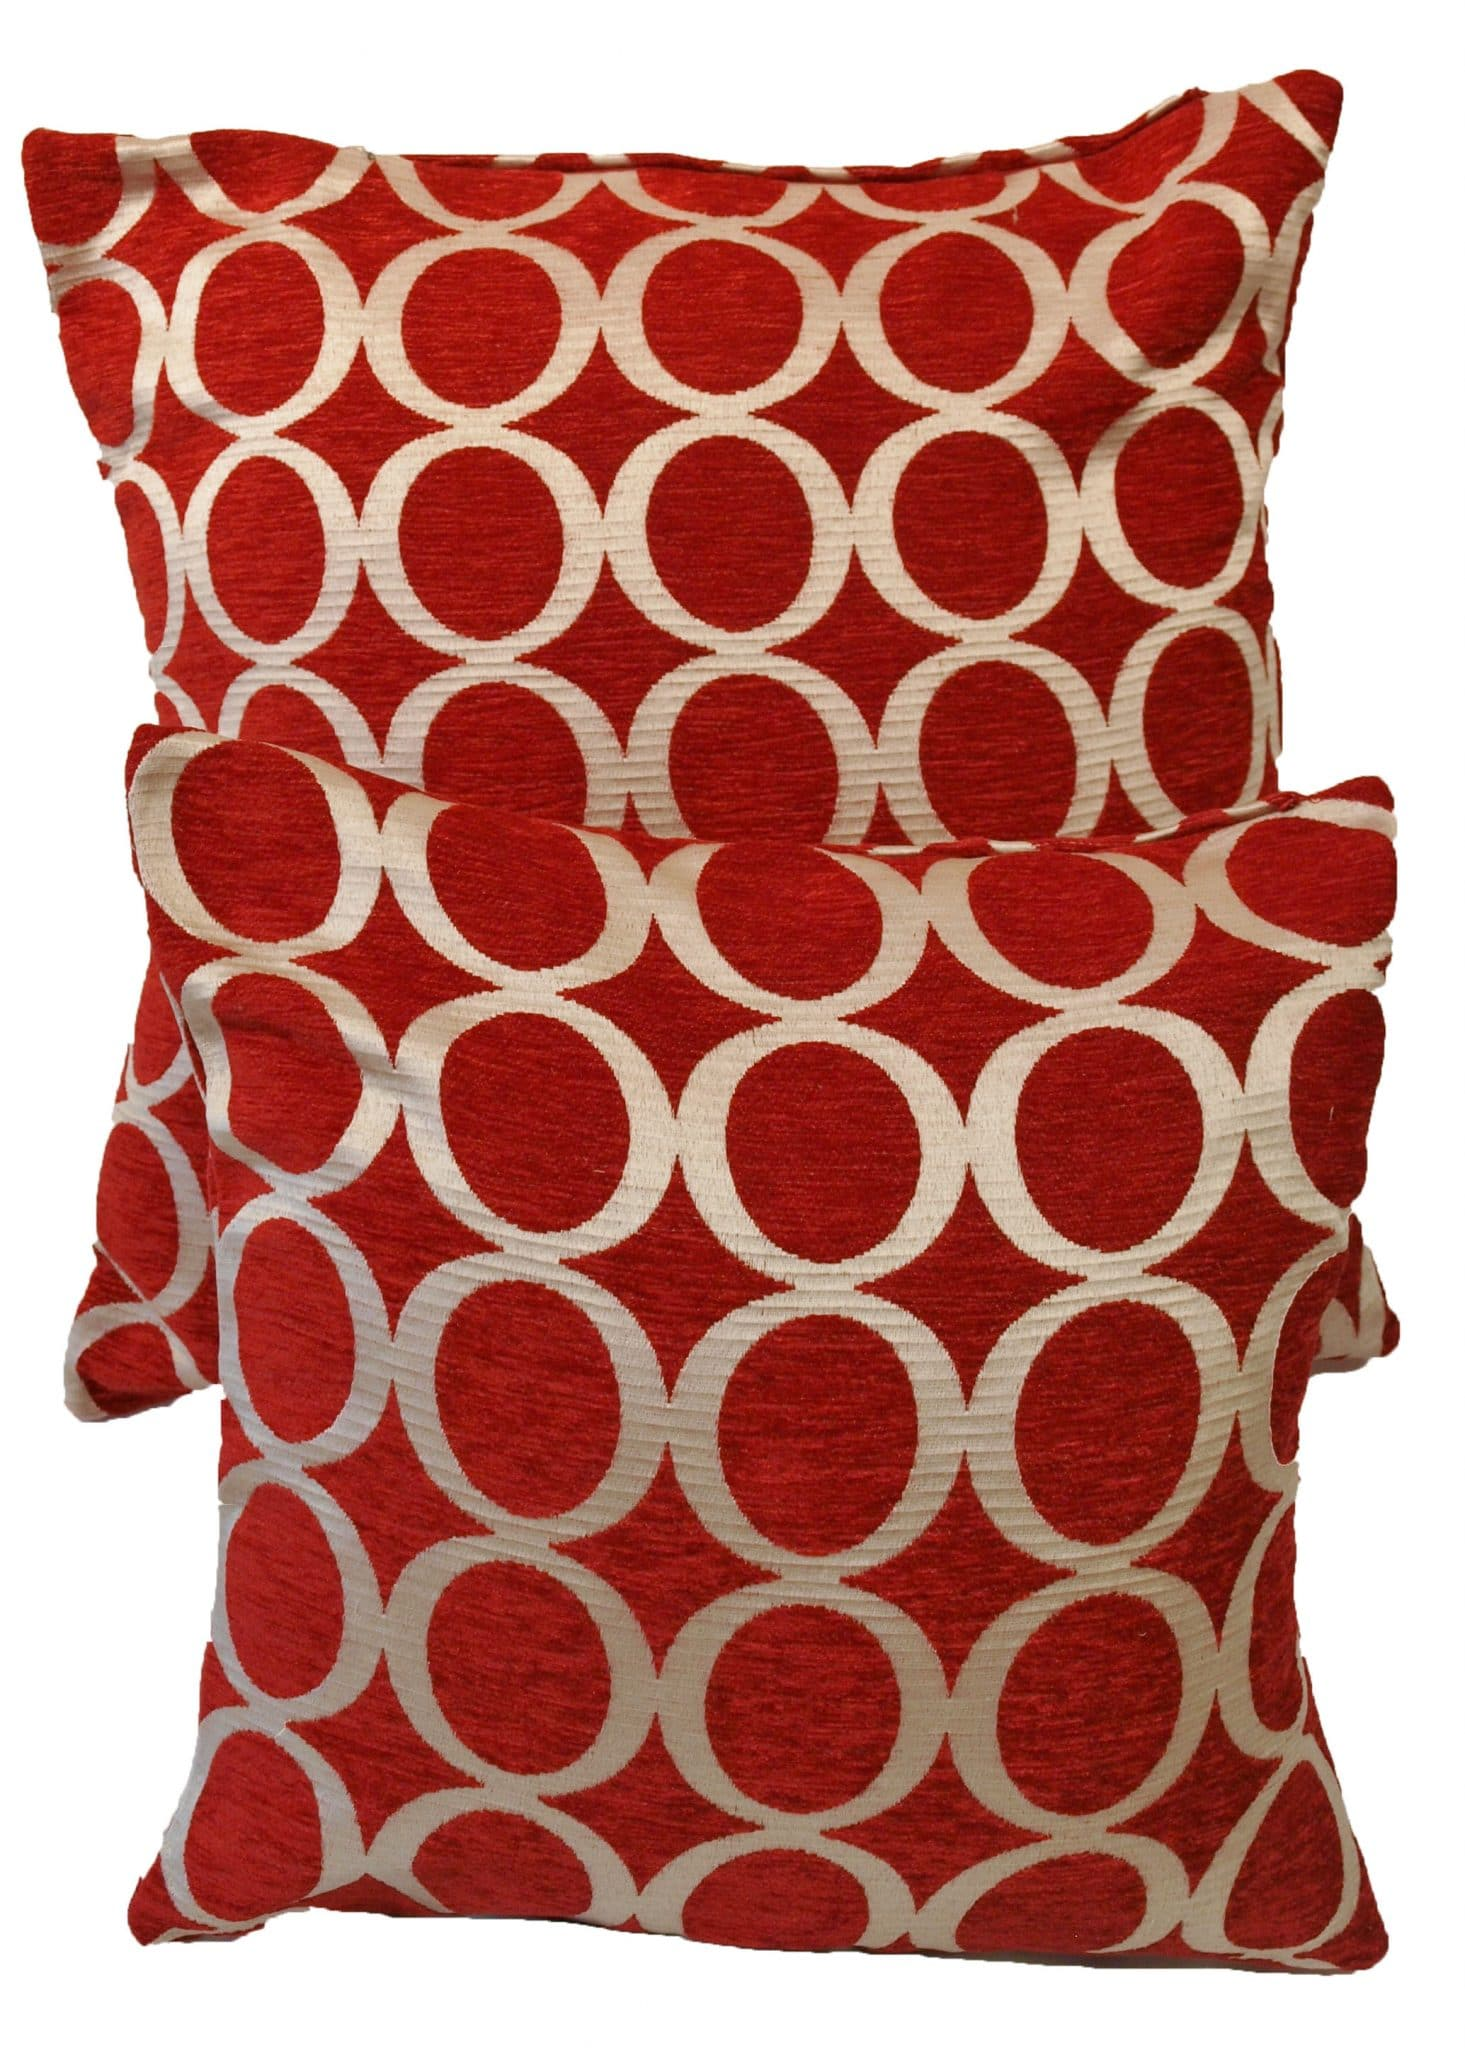 Oh red cushion covers dublin ireland for Sofa cushion covers ireland